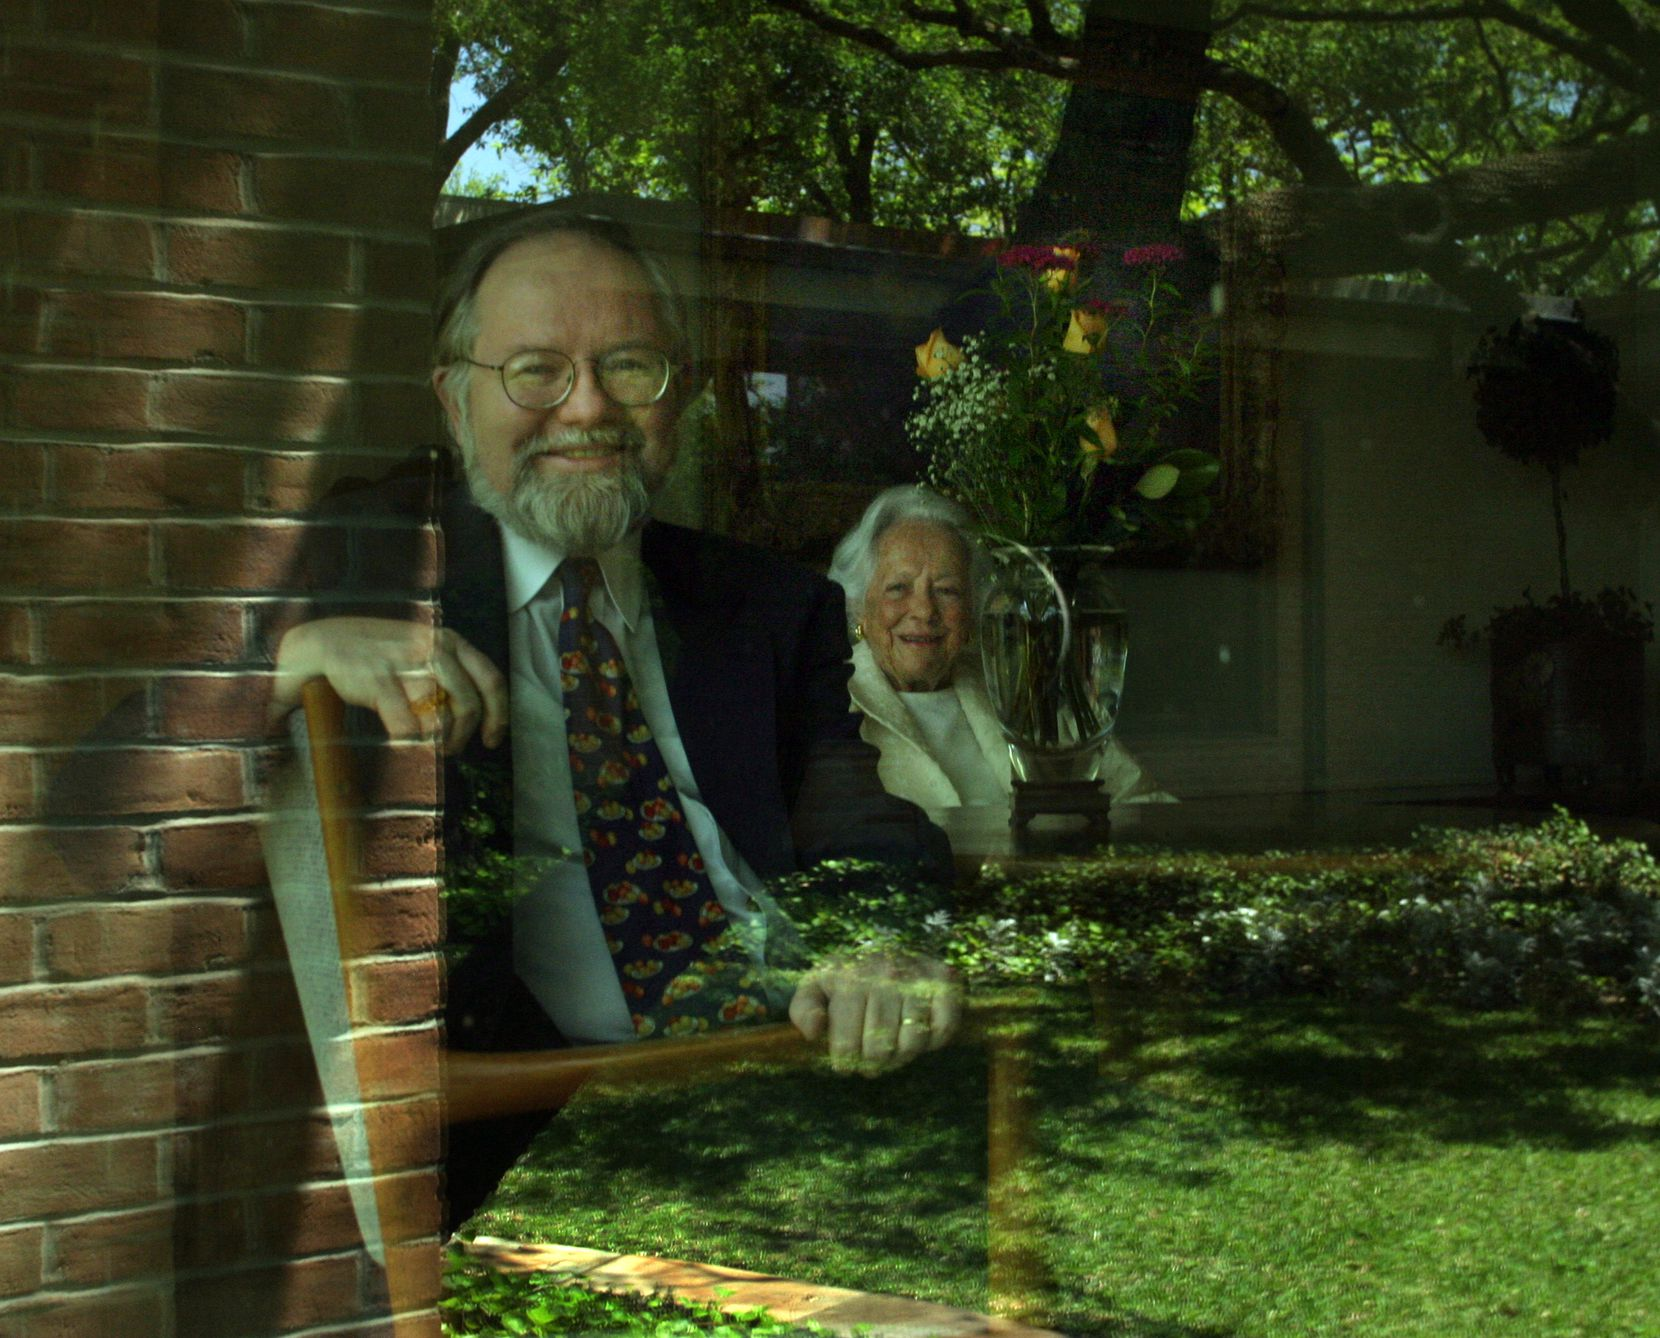 Margaret McDermott (right) and Rick Brettell, photographed in 2004 at McDermott's home in Dallas.